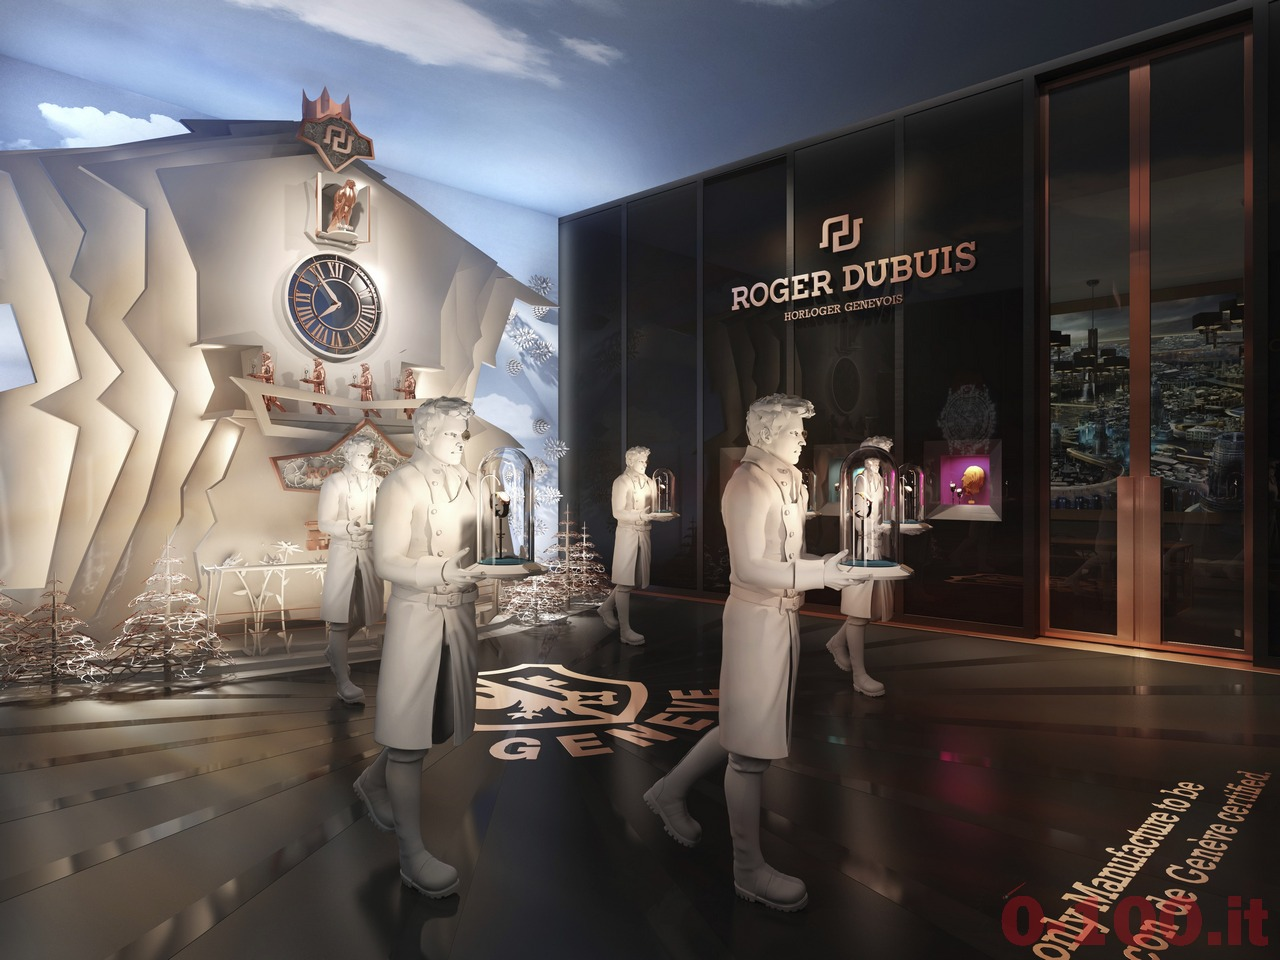 roger-dubuis-alla-watcheswonders-2014-0-100_2